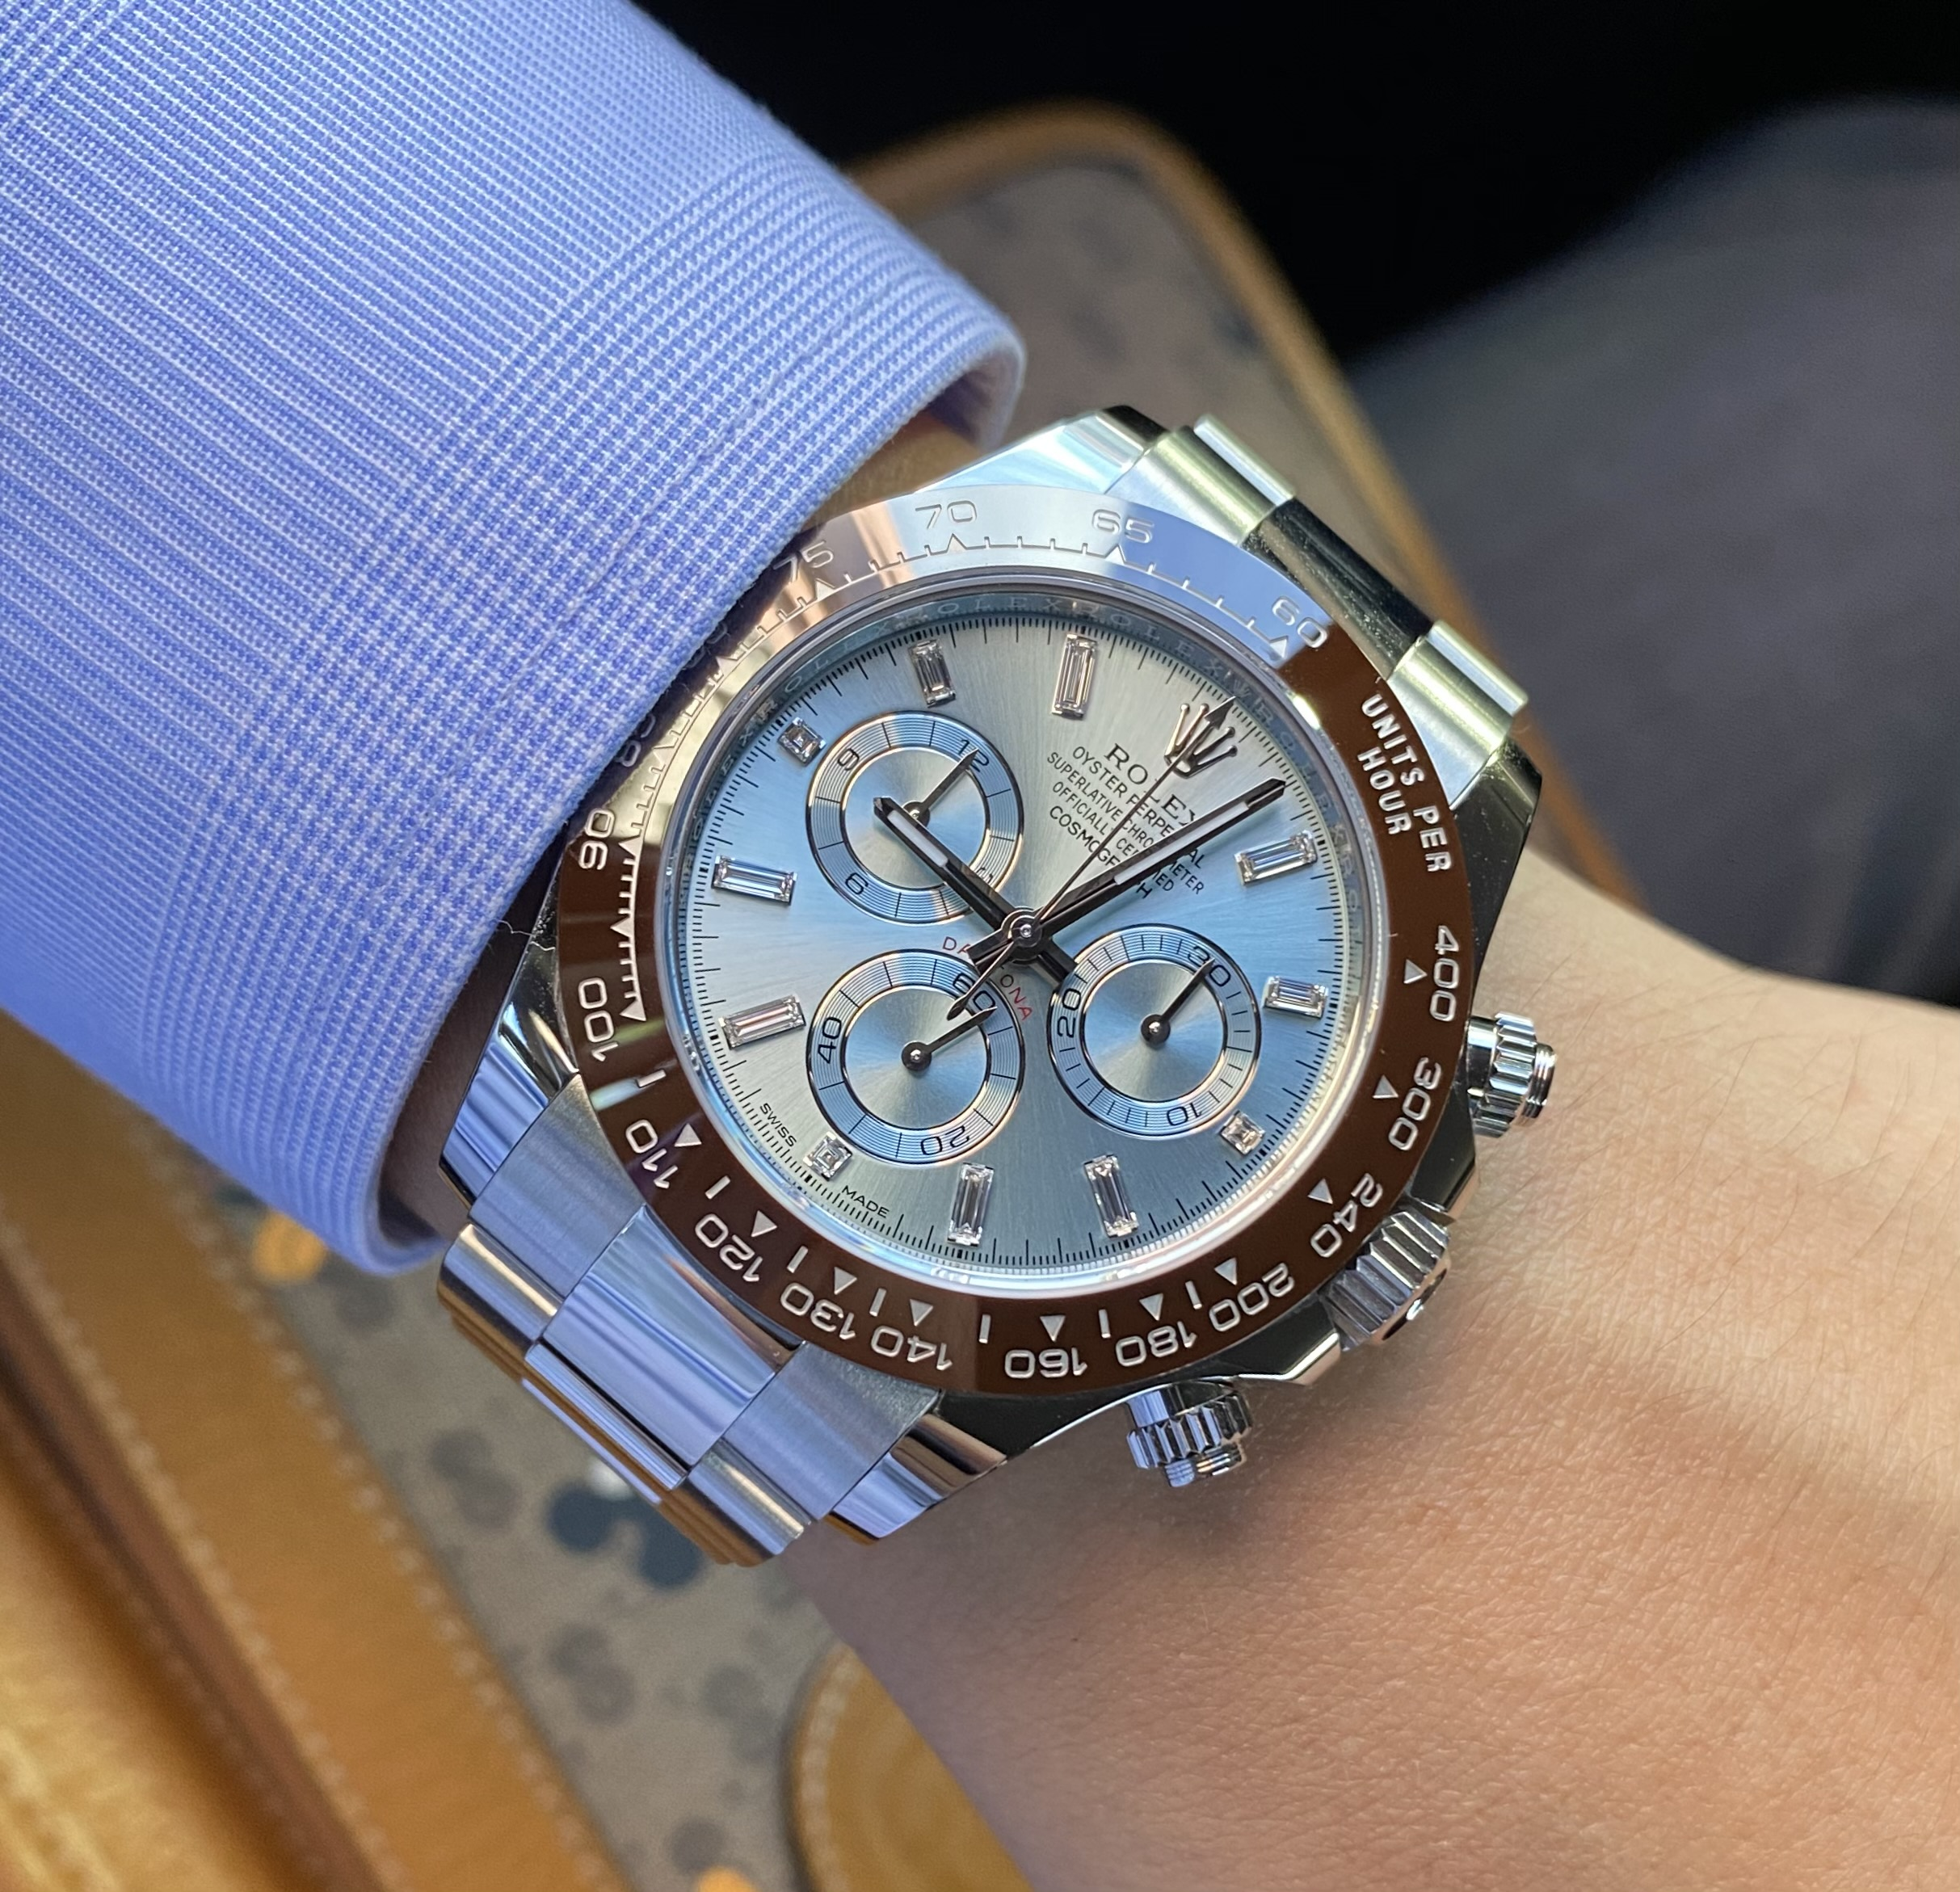 Collector Jack Wong has accidentally discovered one of Rolex's hidden secrets…